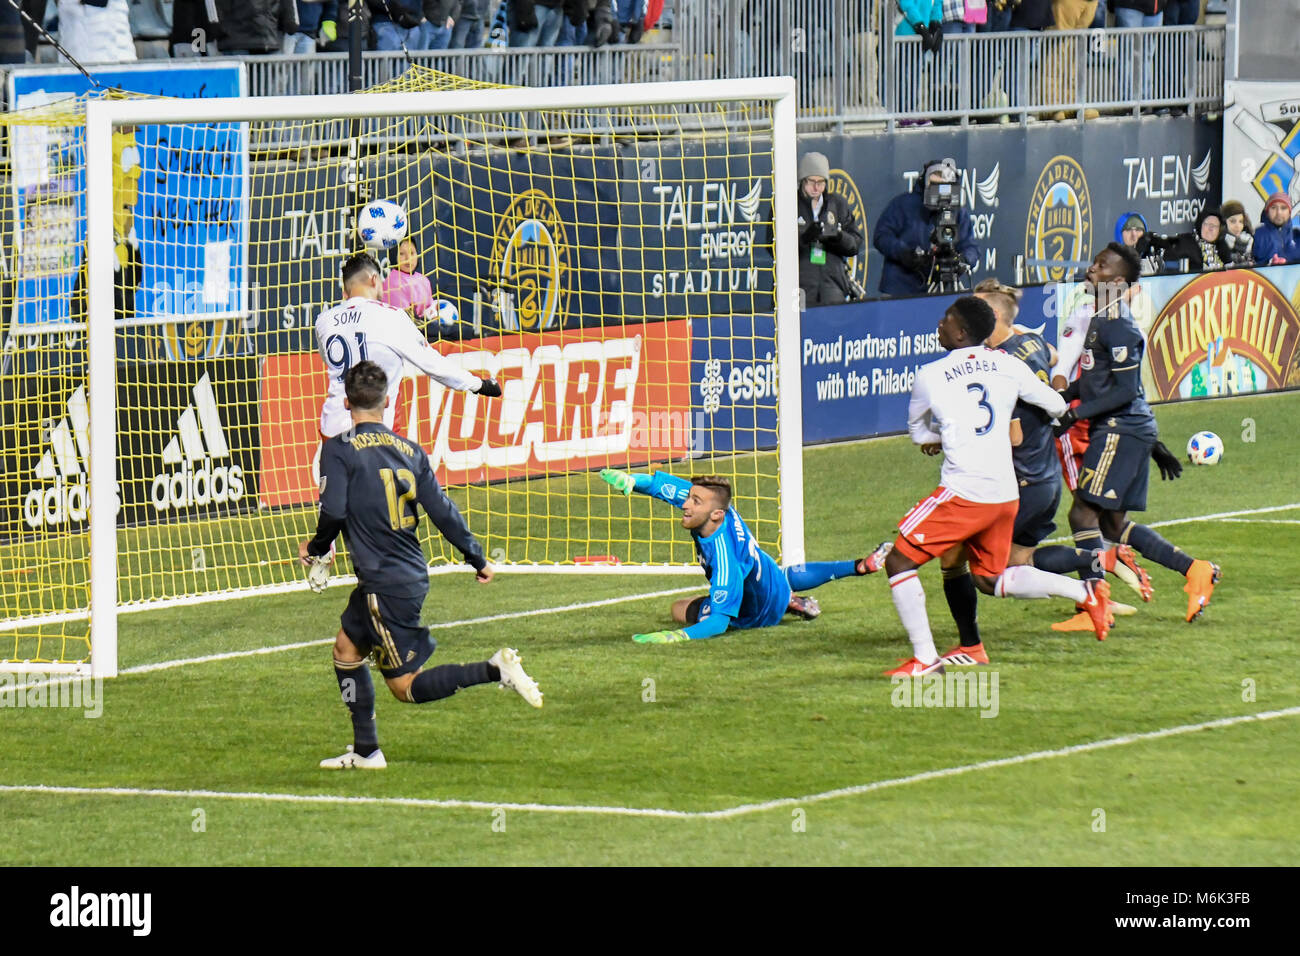 Soccer - football players jumping and leaping to head the ball during a Gabriel Somi of Sweden saves a curing corner - Stock Image